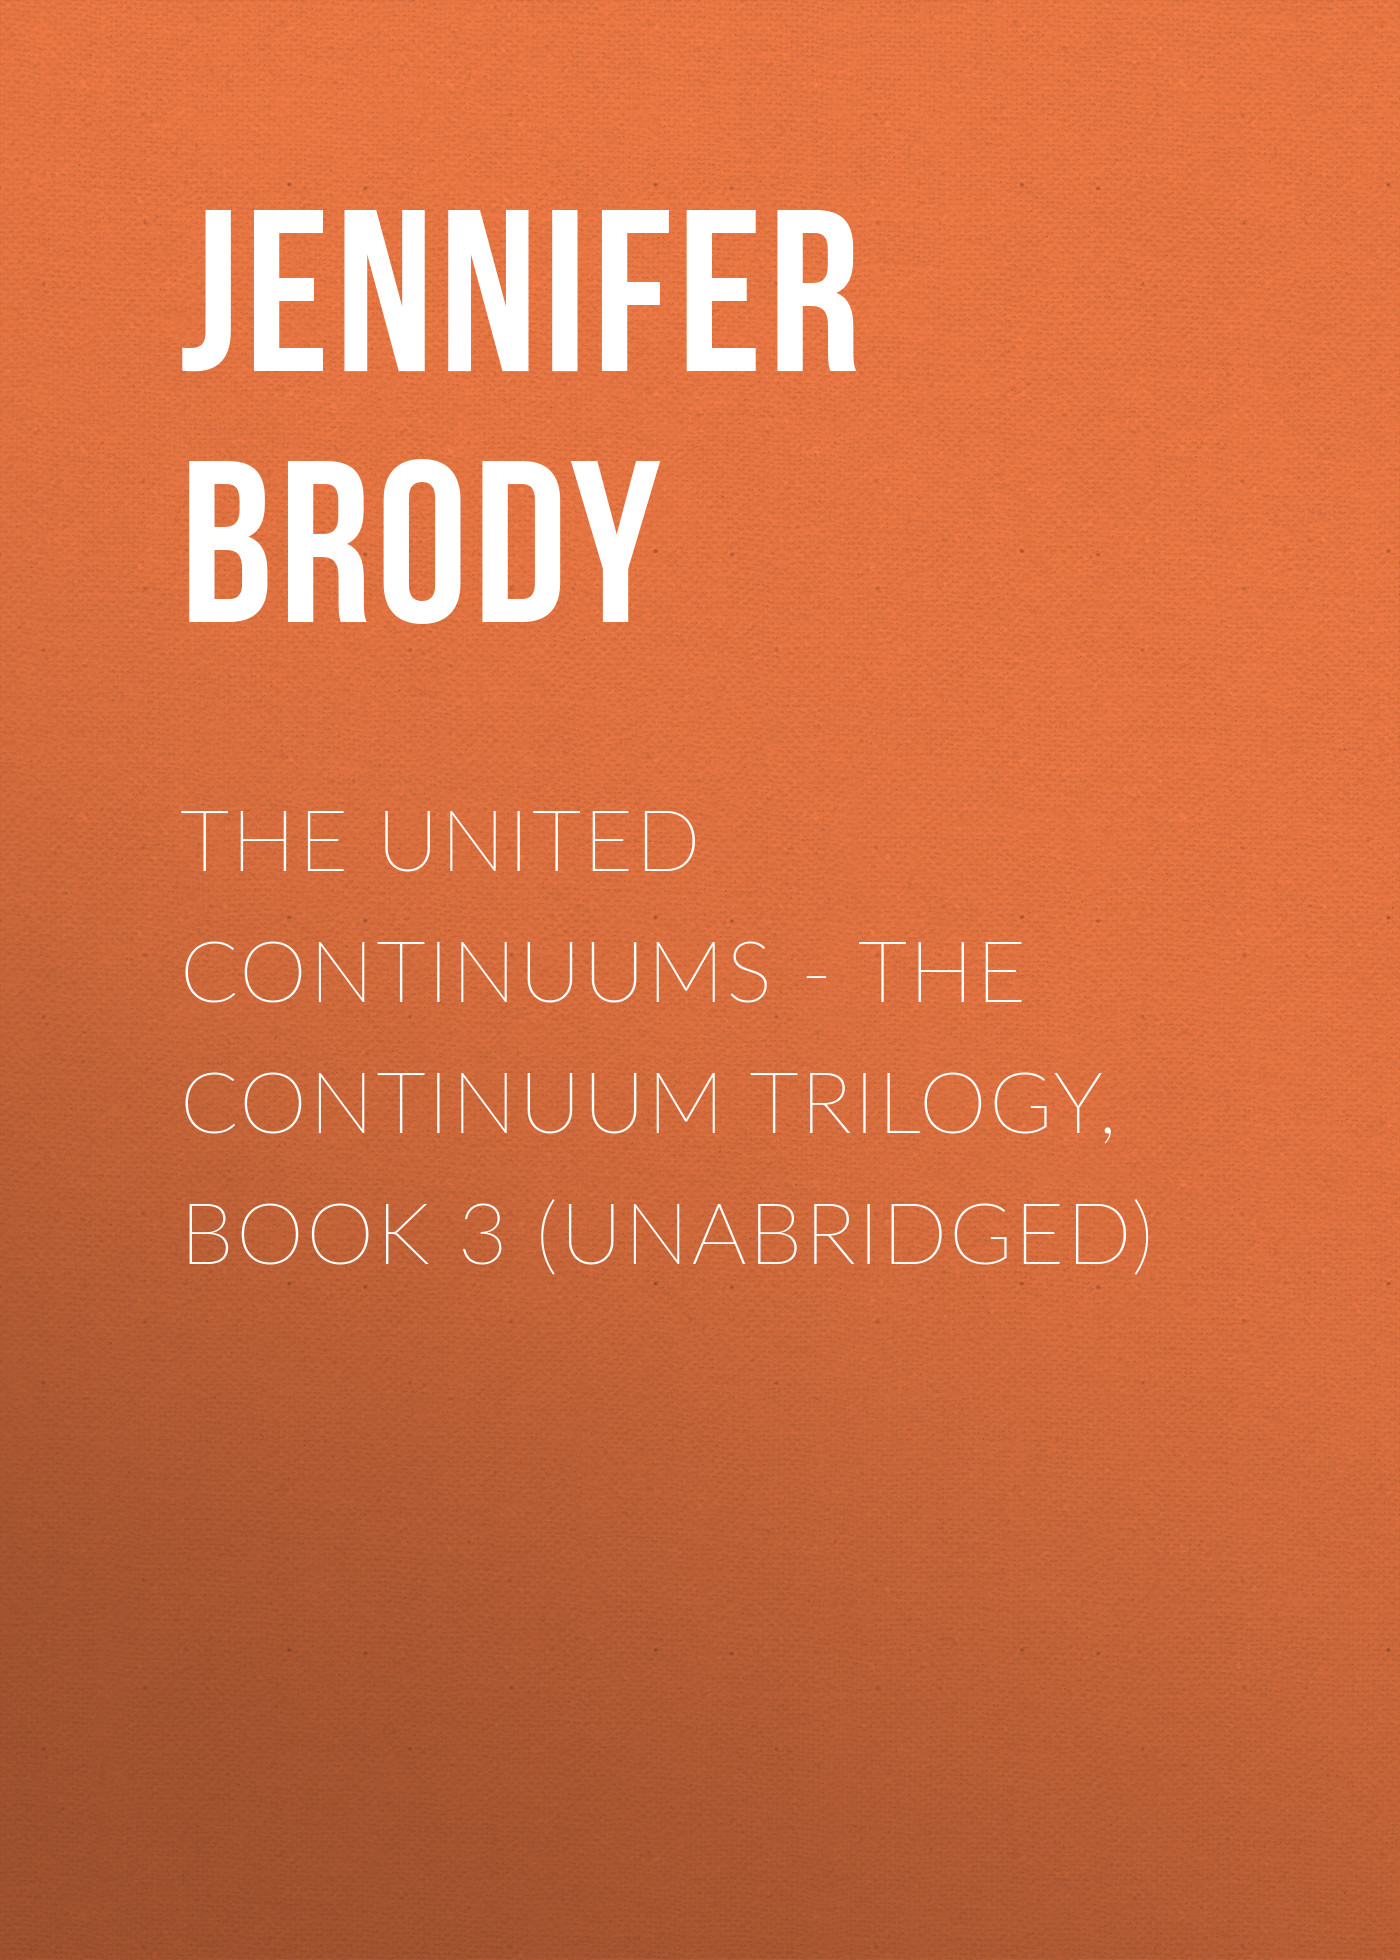 Jennifer Brody The United Continuums - The Continuum Trilogy, Book 3 (Unabridged) jennifer brody the united continuums the continuum trilogy book 3 unabridged